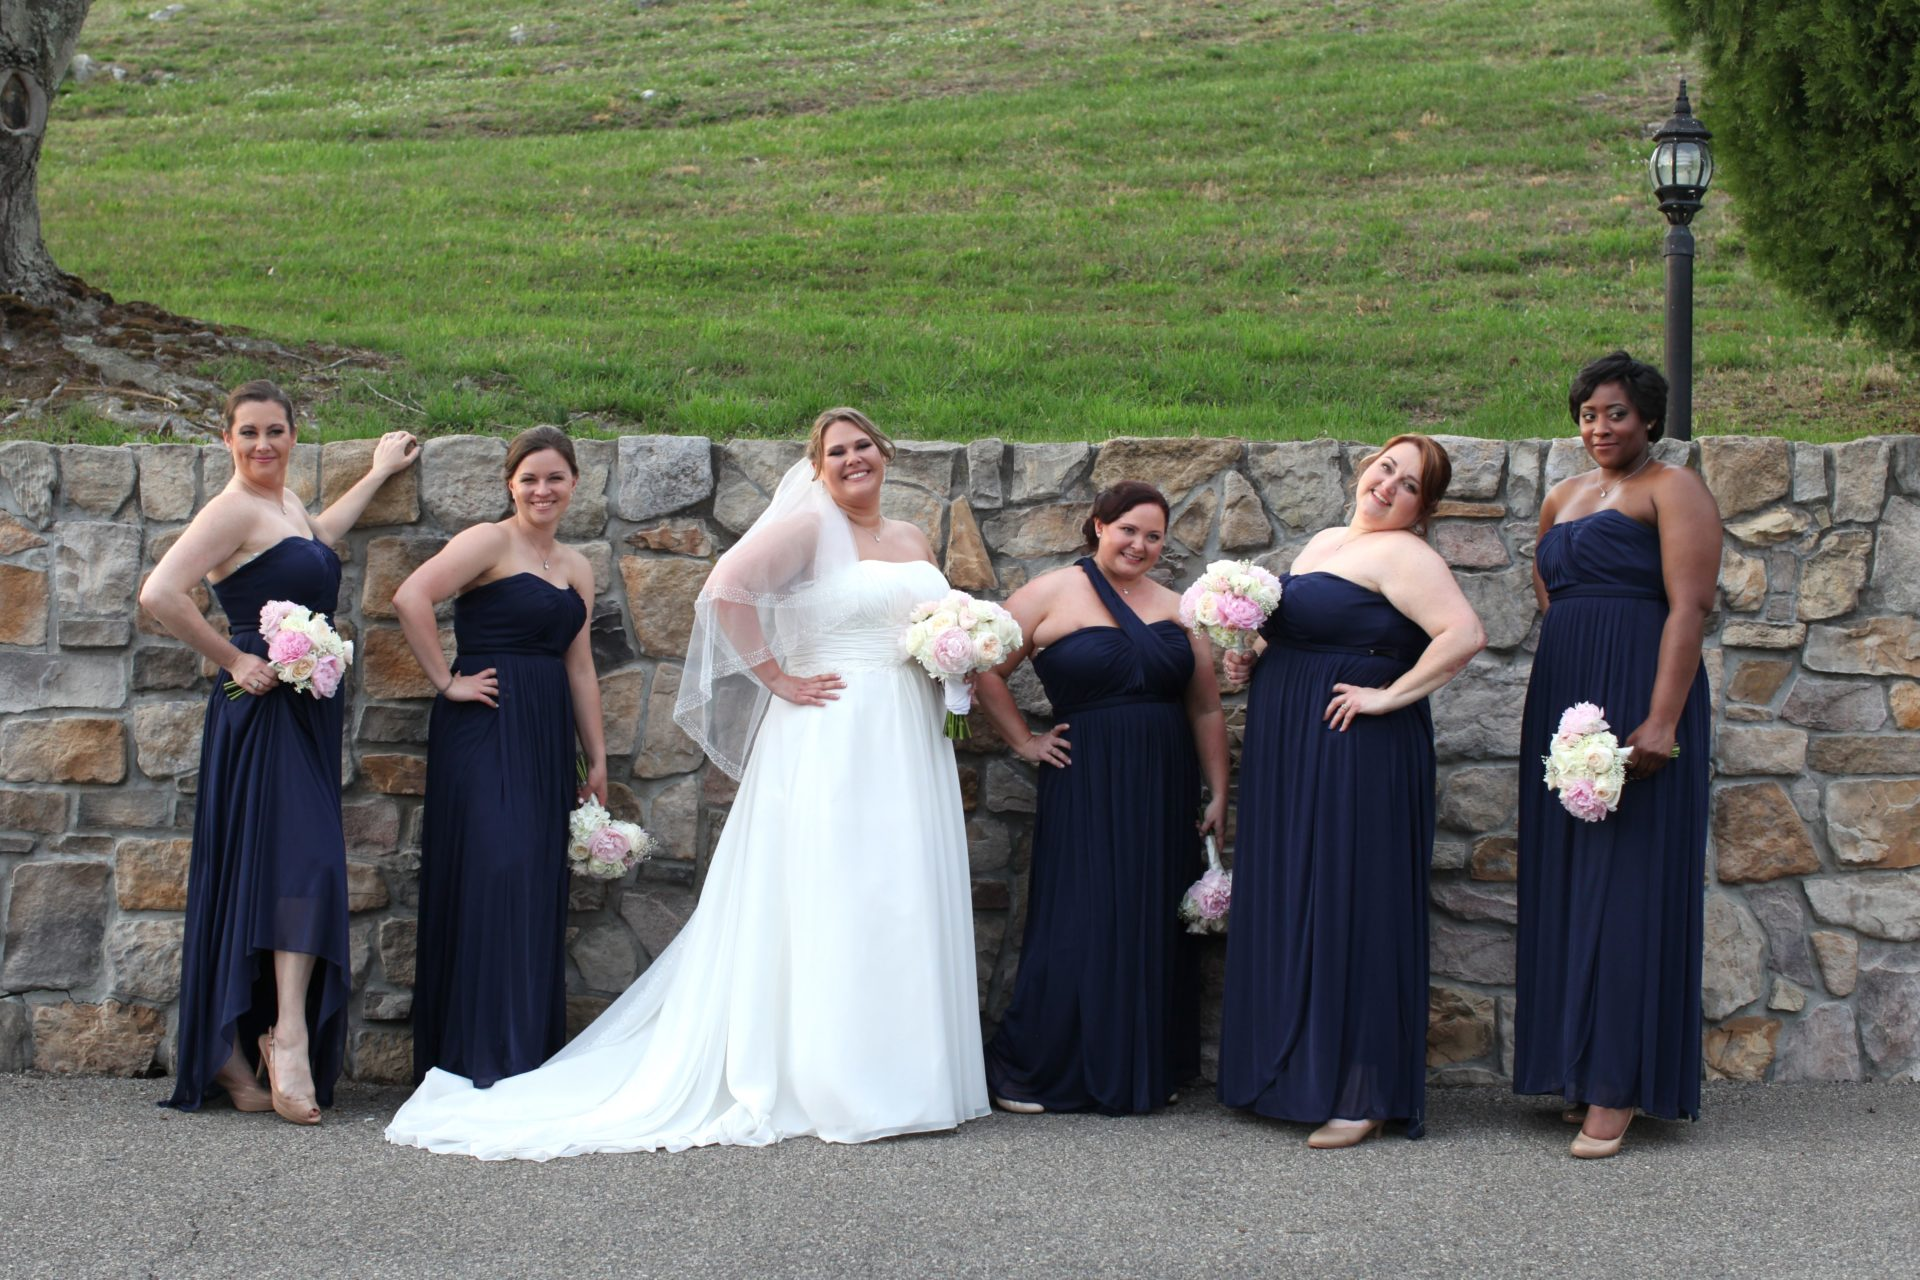 Bridesmaid and bride in front of stone wall